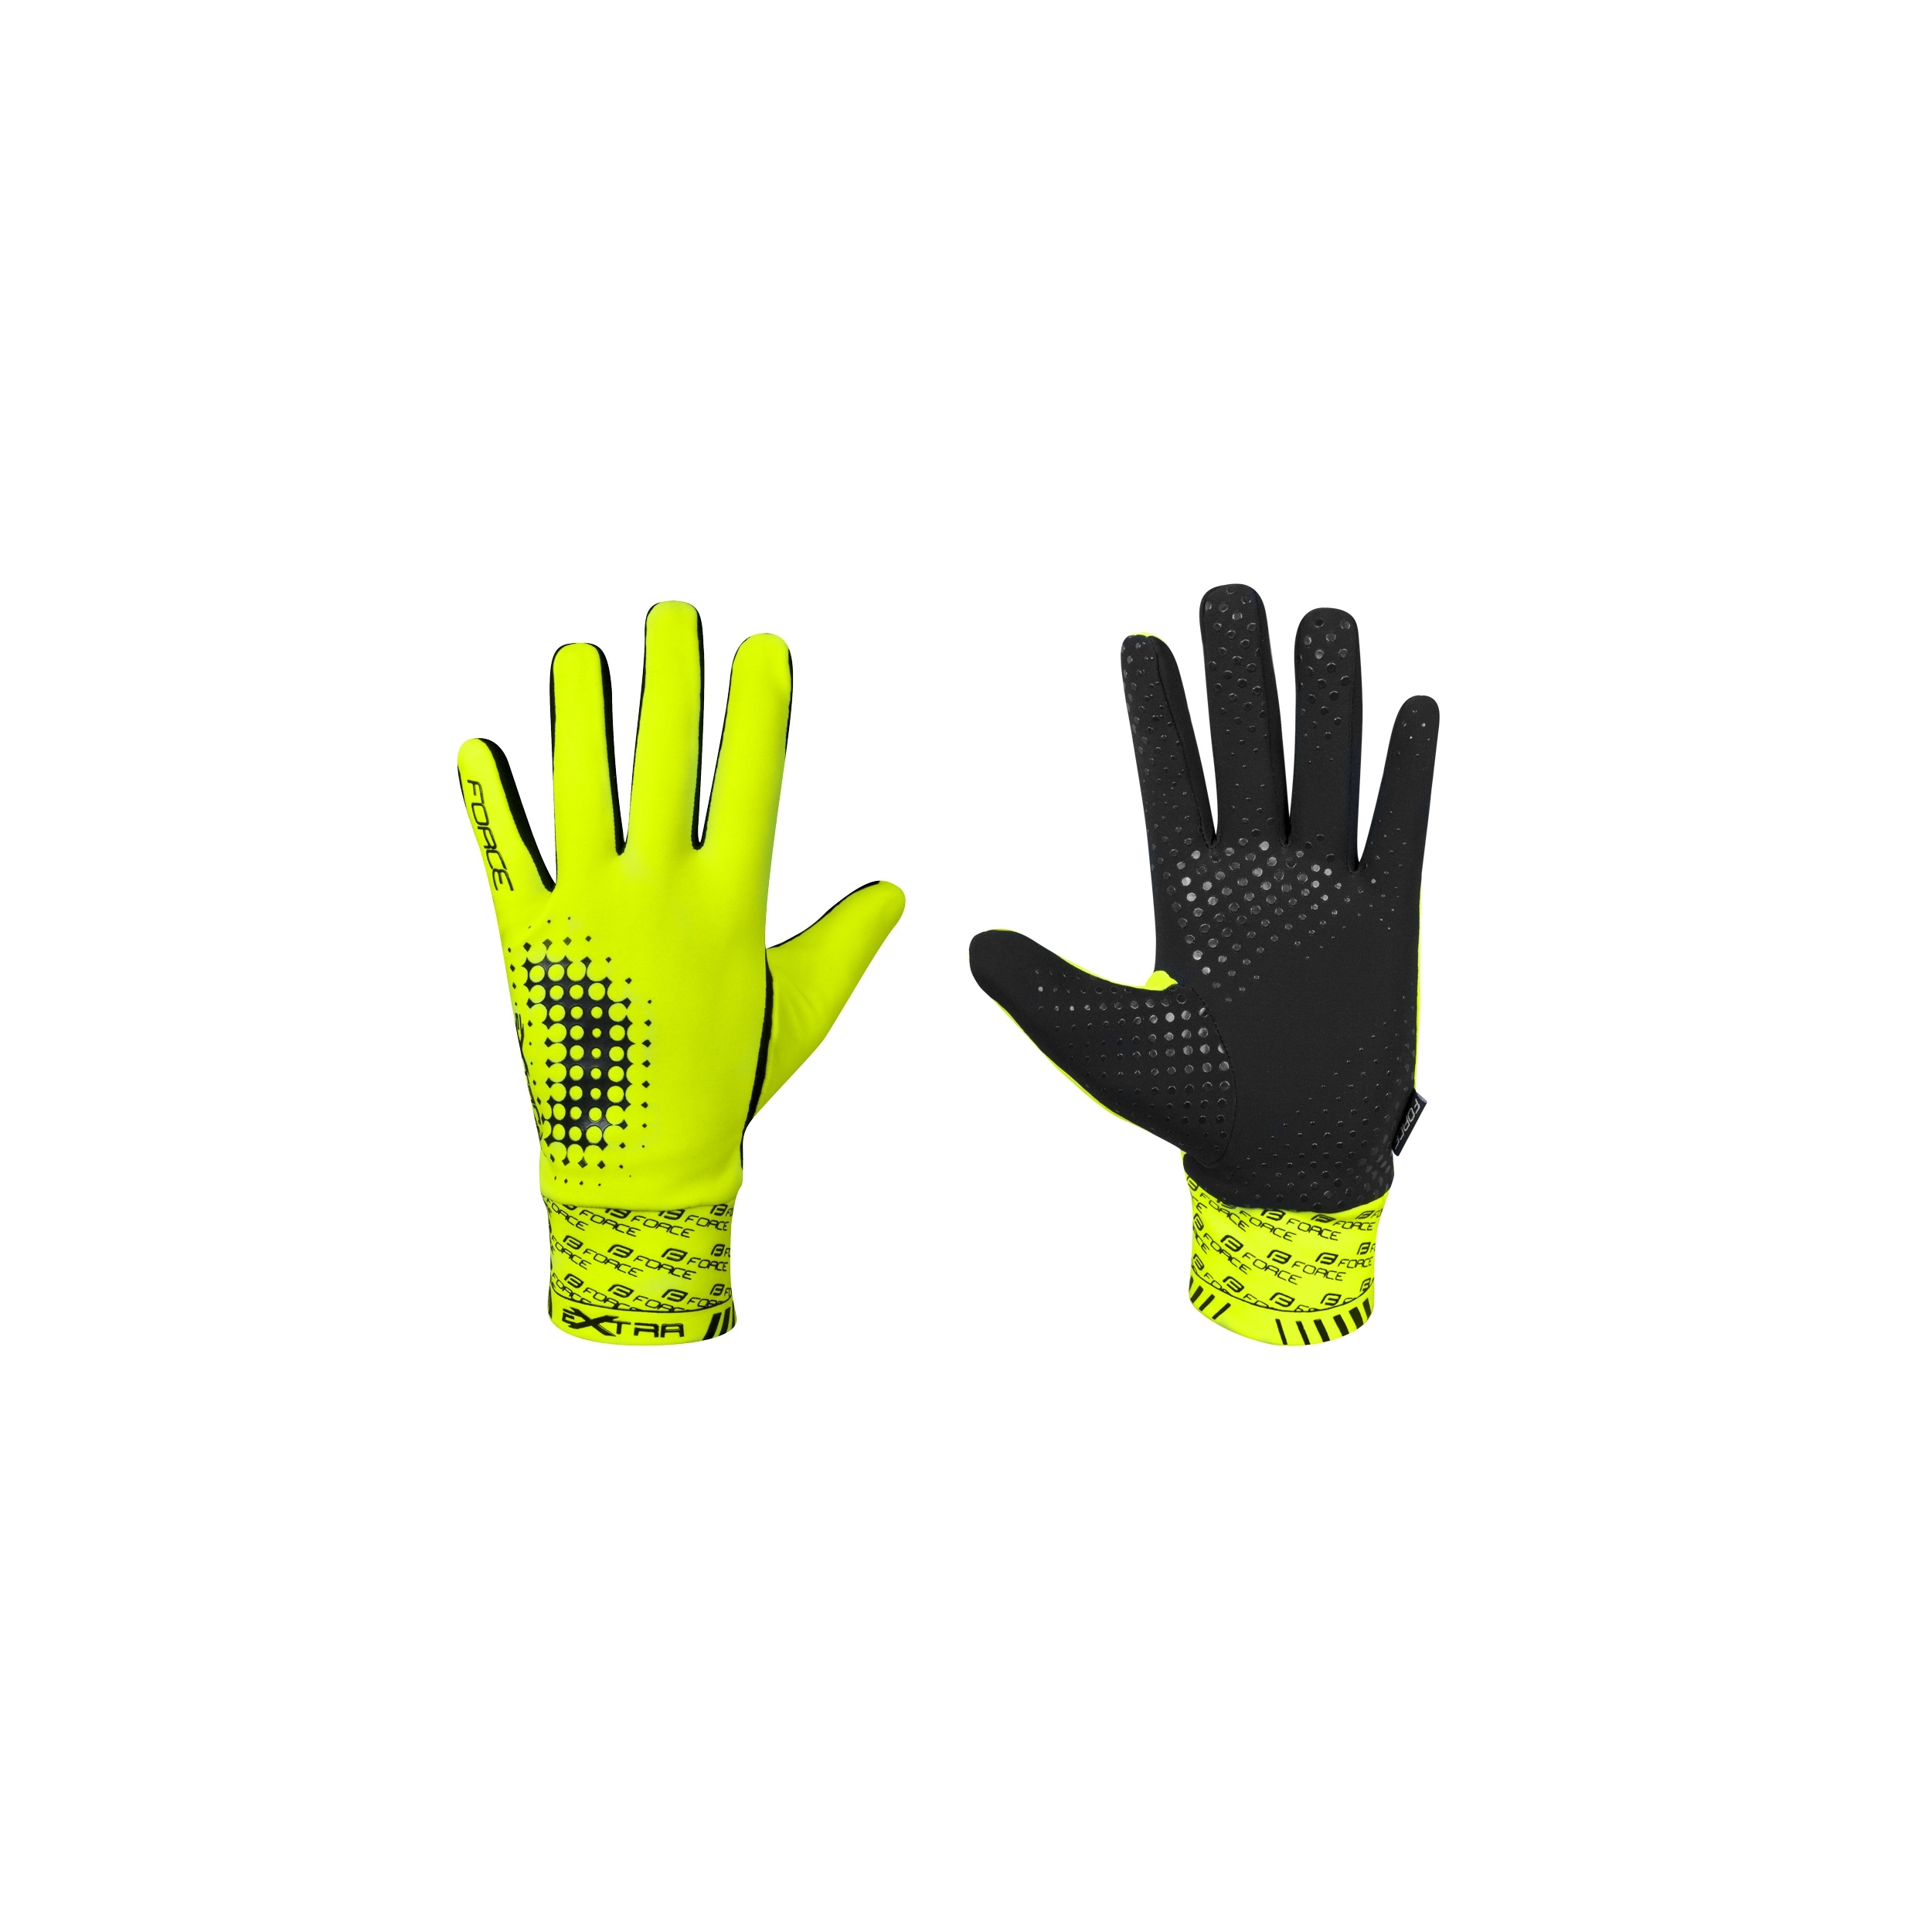 Rukavice FORCE EXTRA, fluo M